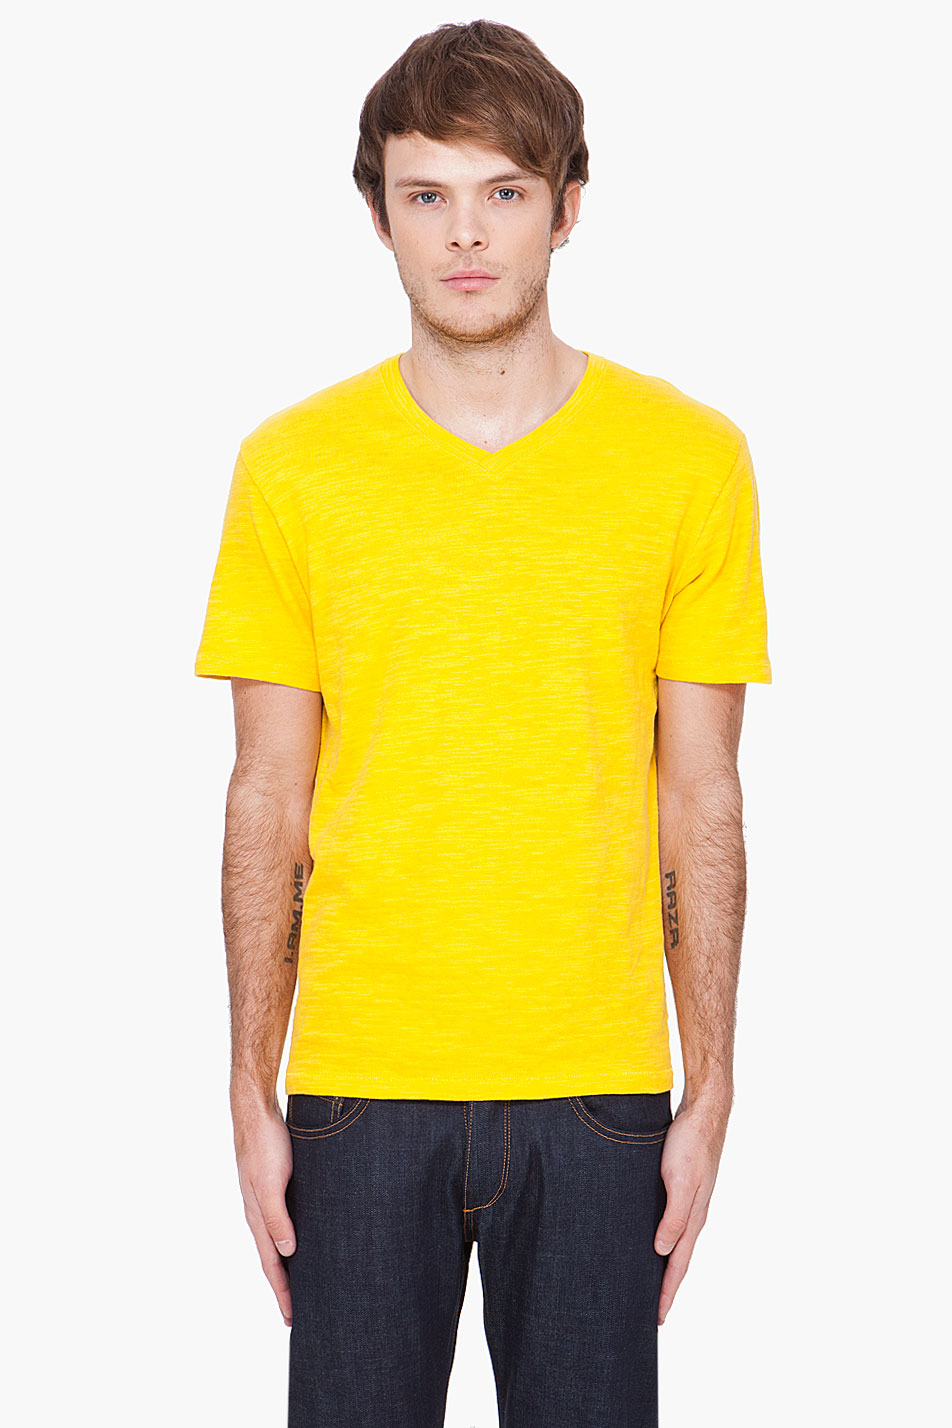 Rag bone yellow v neck t shirt in yellow for men lyst for Rag and bone t shirts